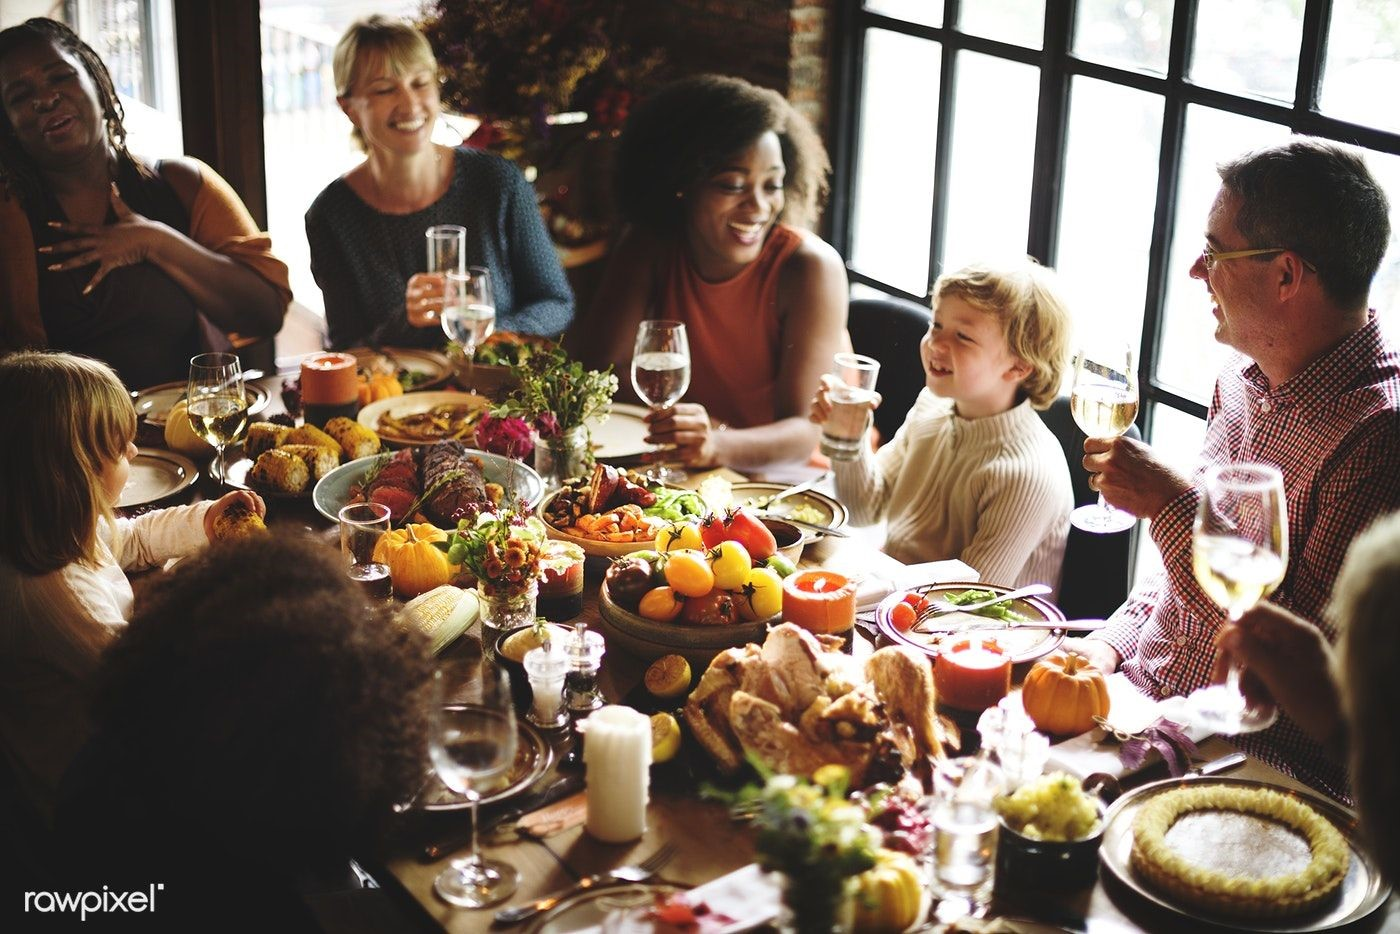 Talking at the Dinner Table: Having Healthy Family Conversations